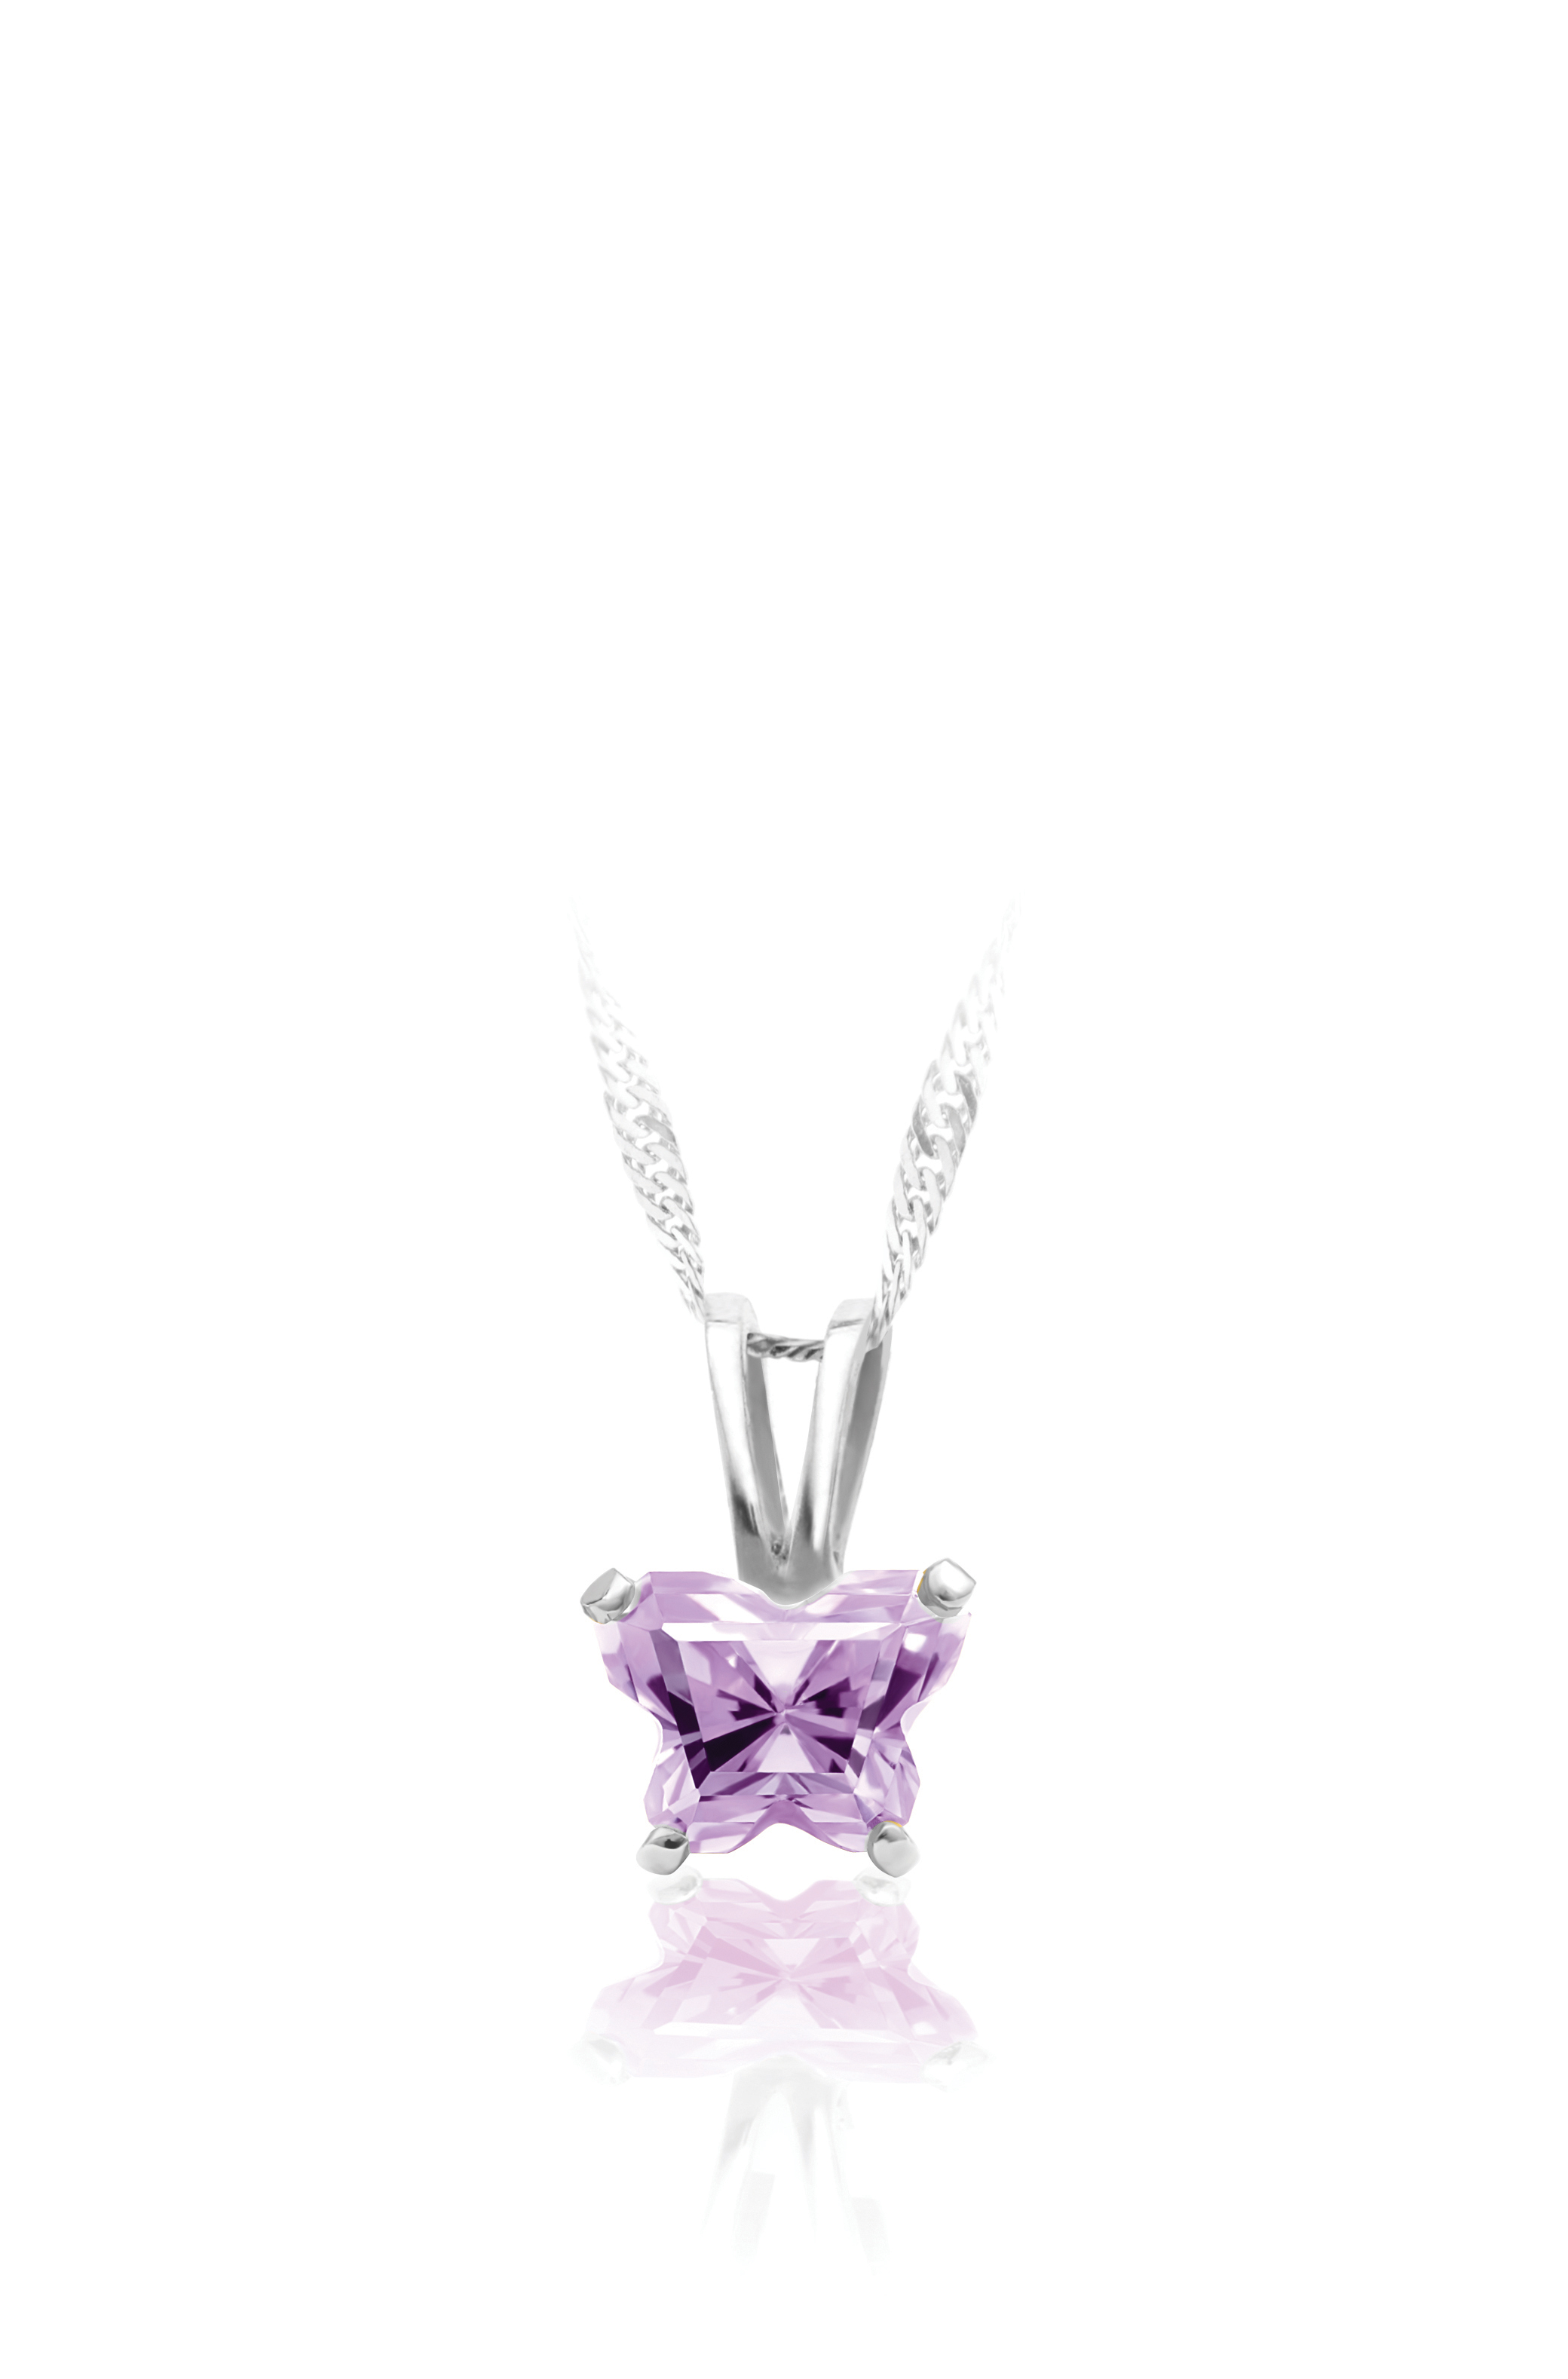 pendant for babies in sterling silver with lilac cubic zirconia (month of June) - Chain included